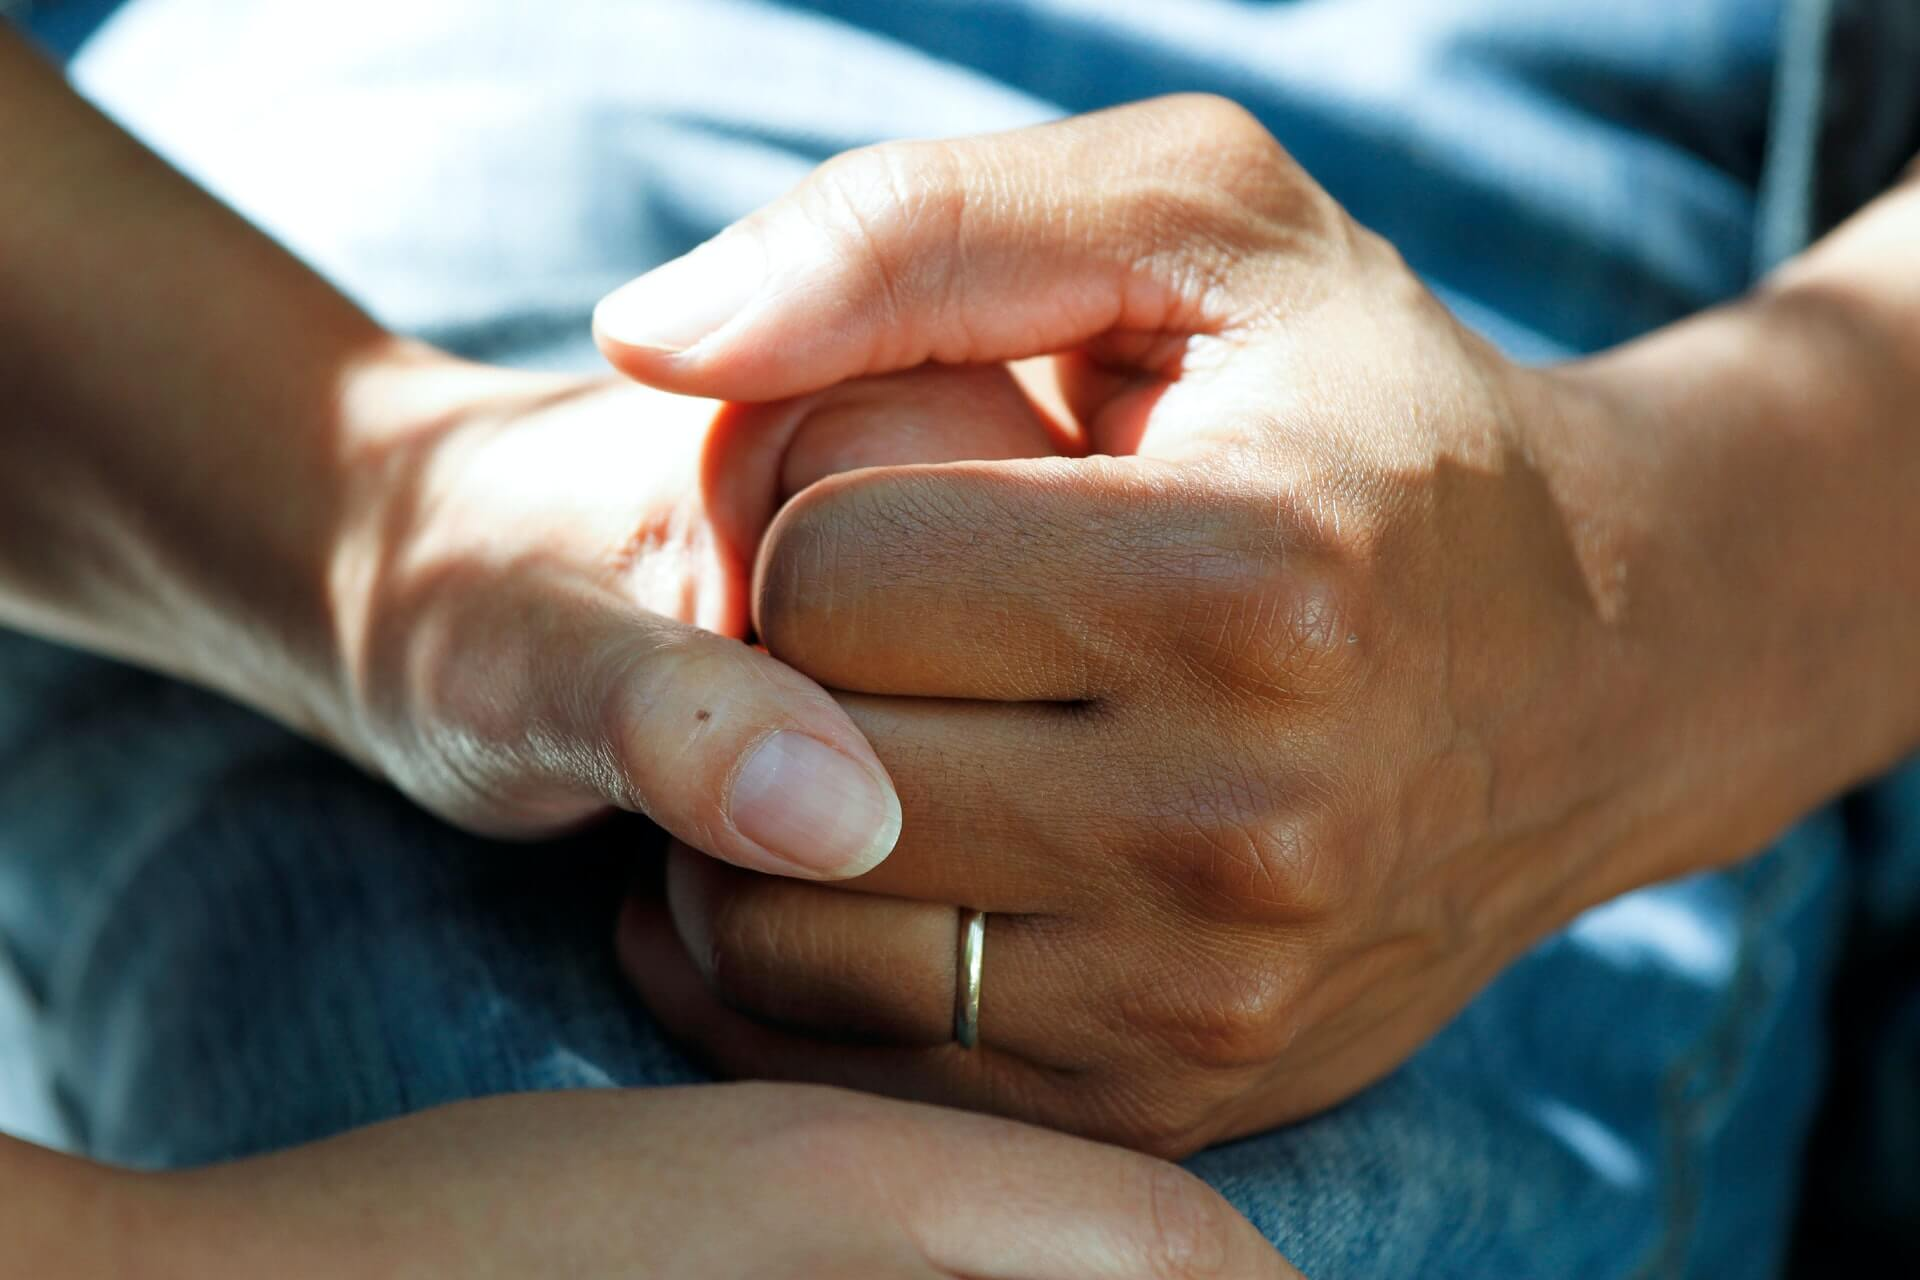 Patient with wedding ring holding hands with a loved one